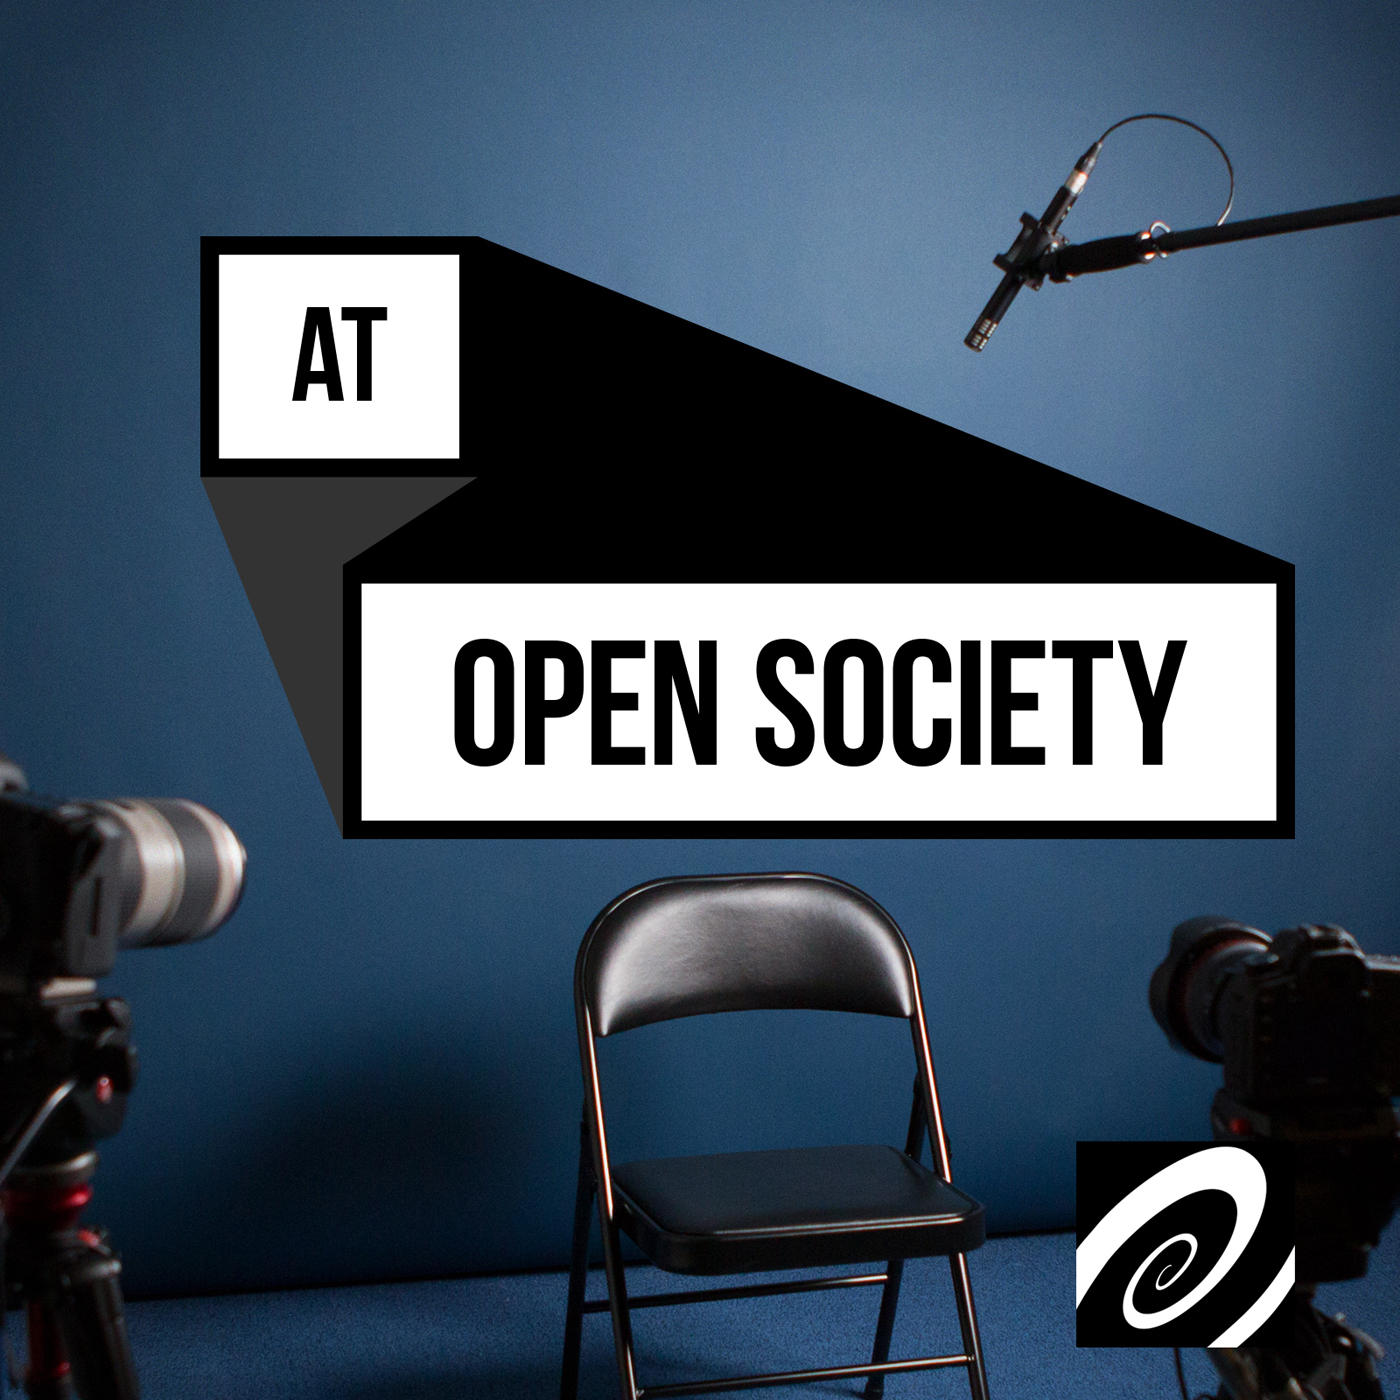 At Open Society